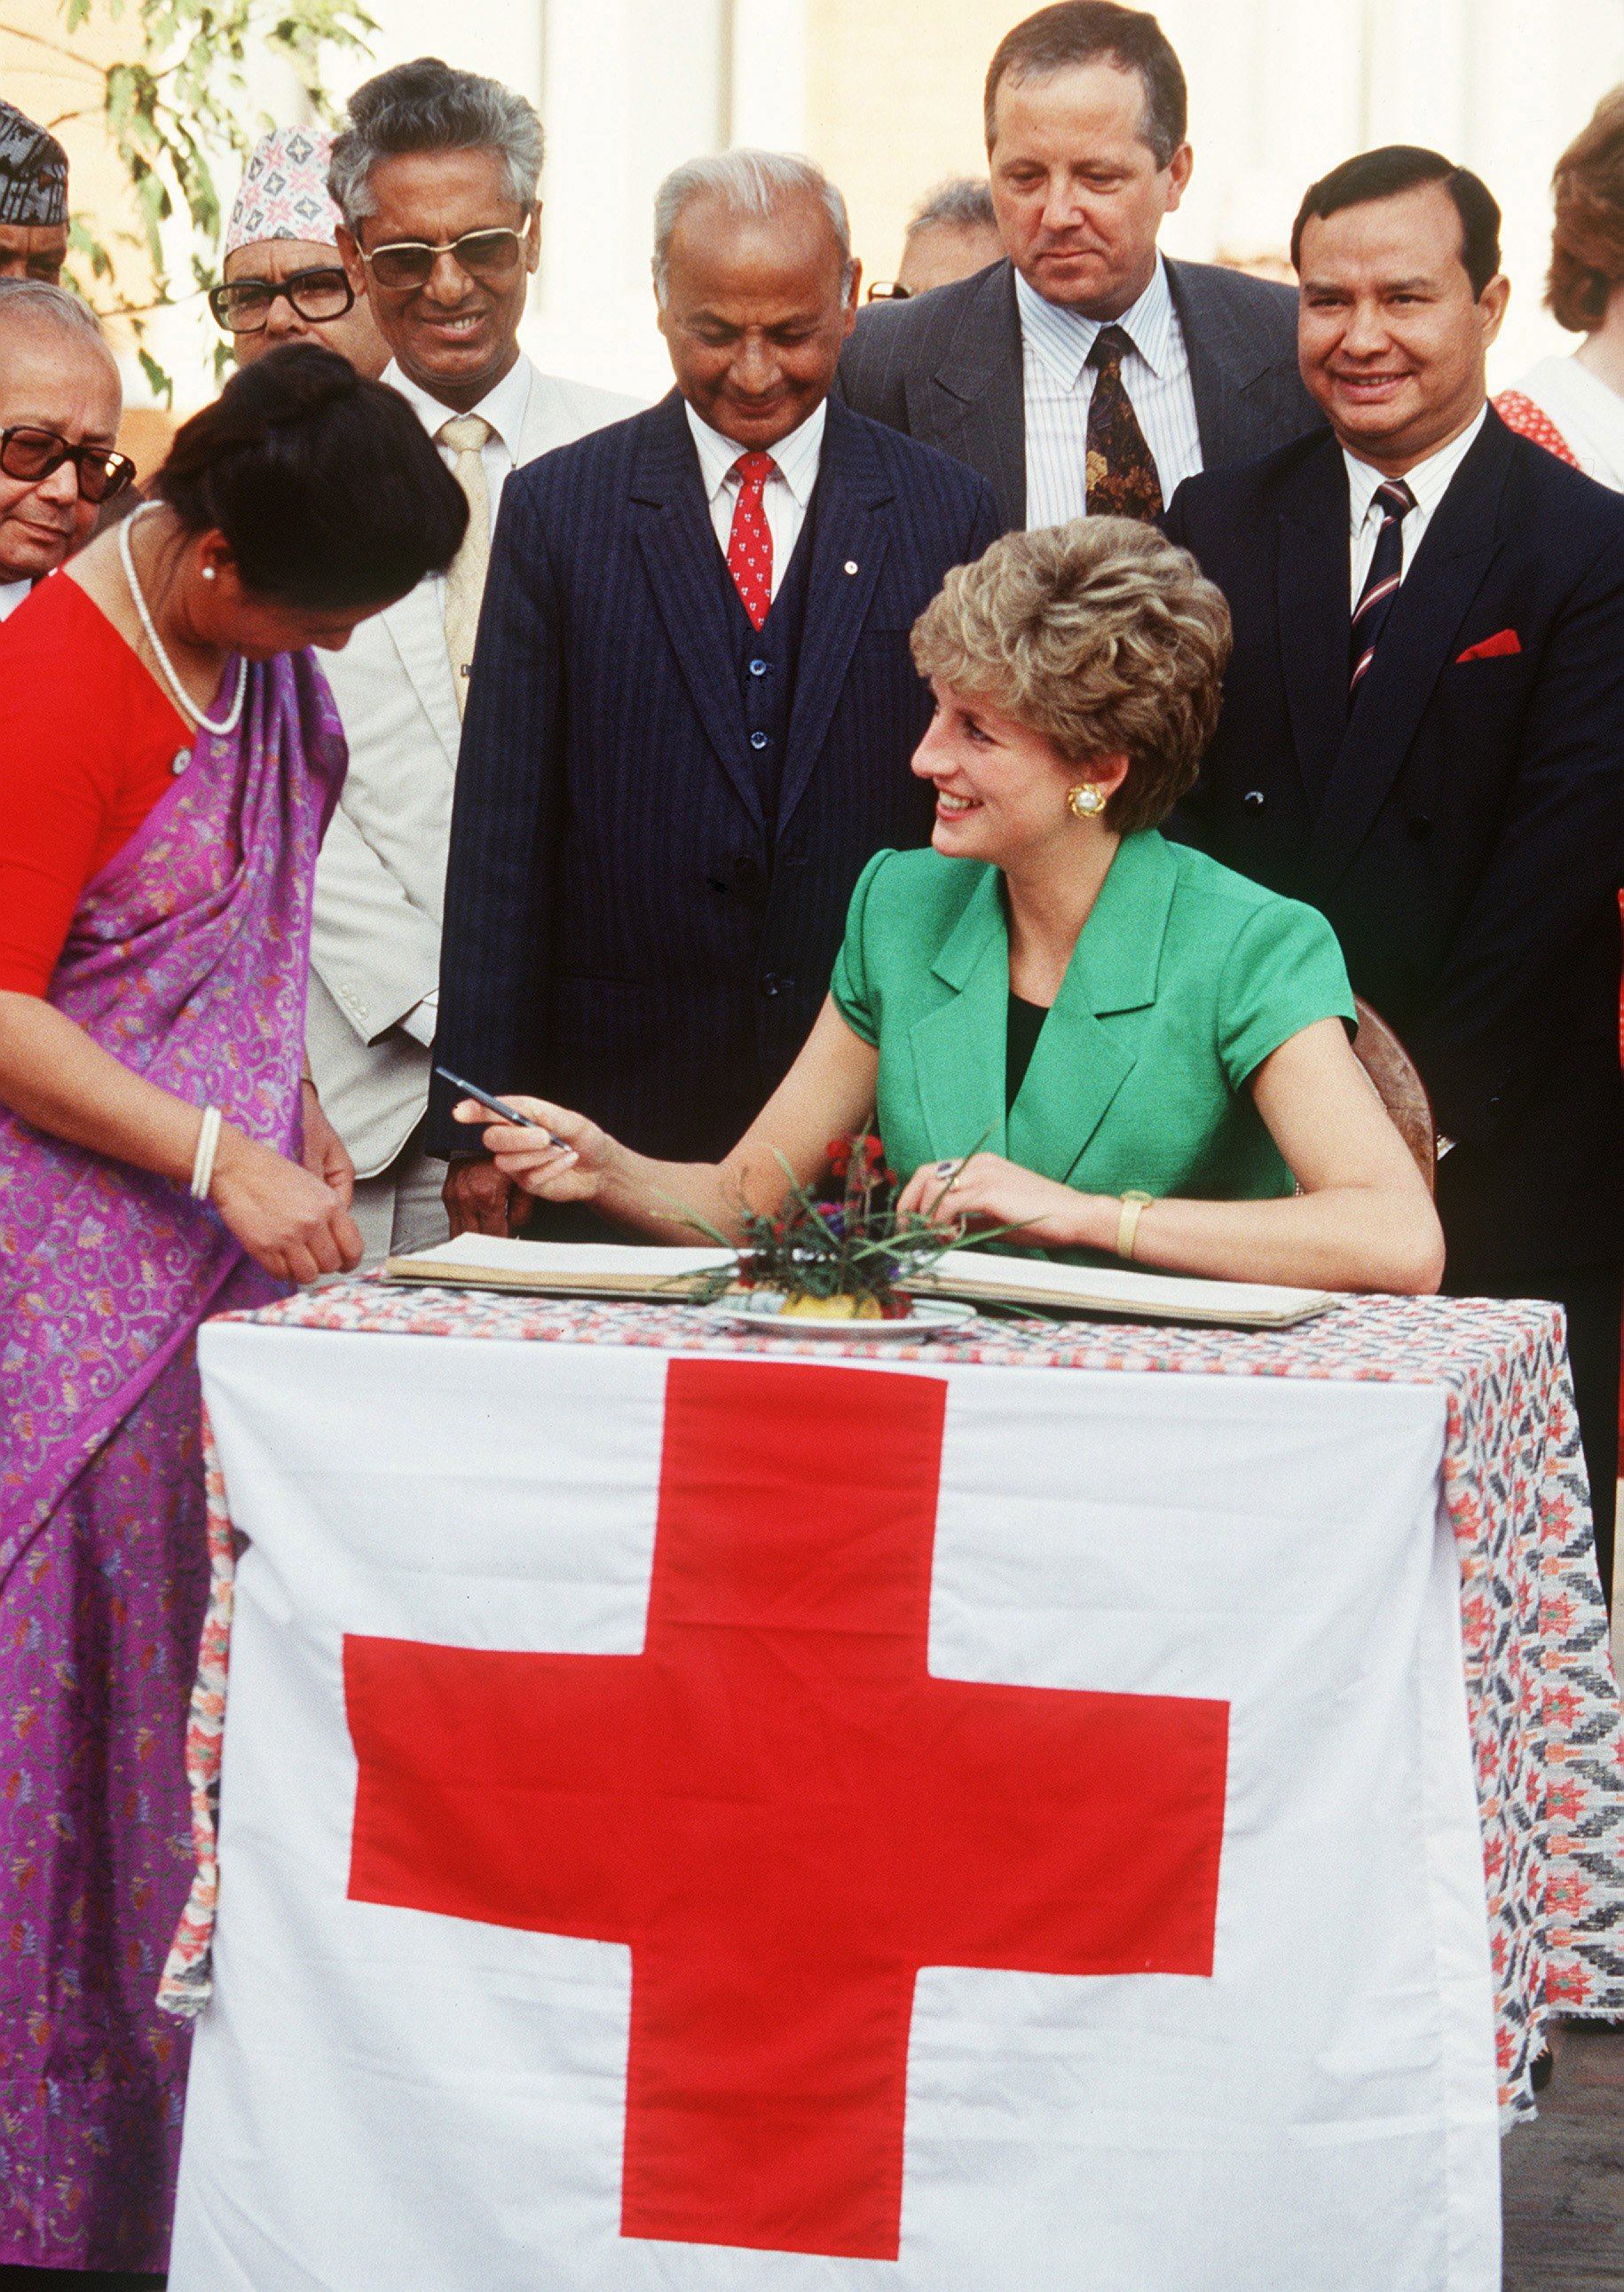 Princess Diana Was the First Member of the British Royal Family to Have Done This